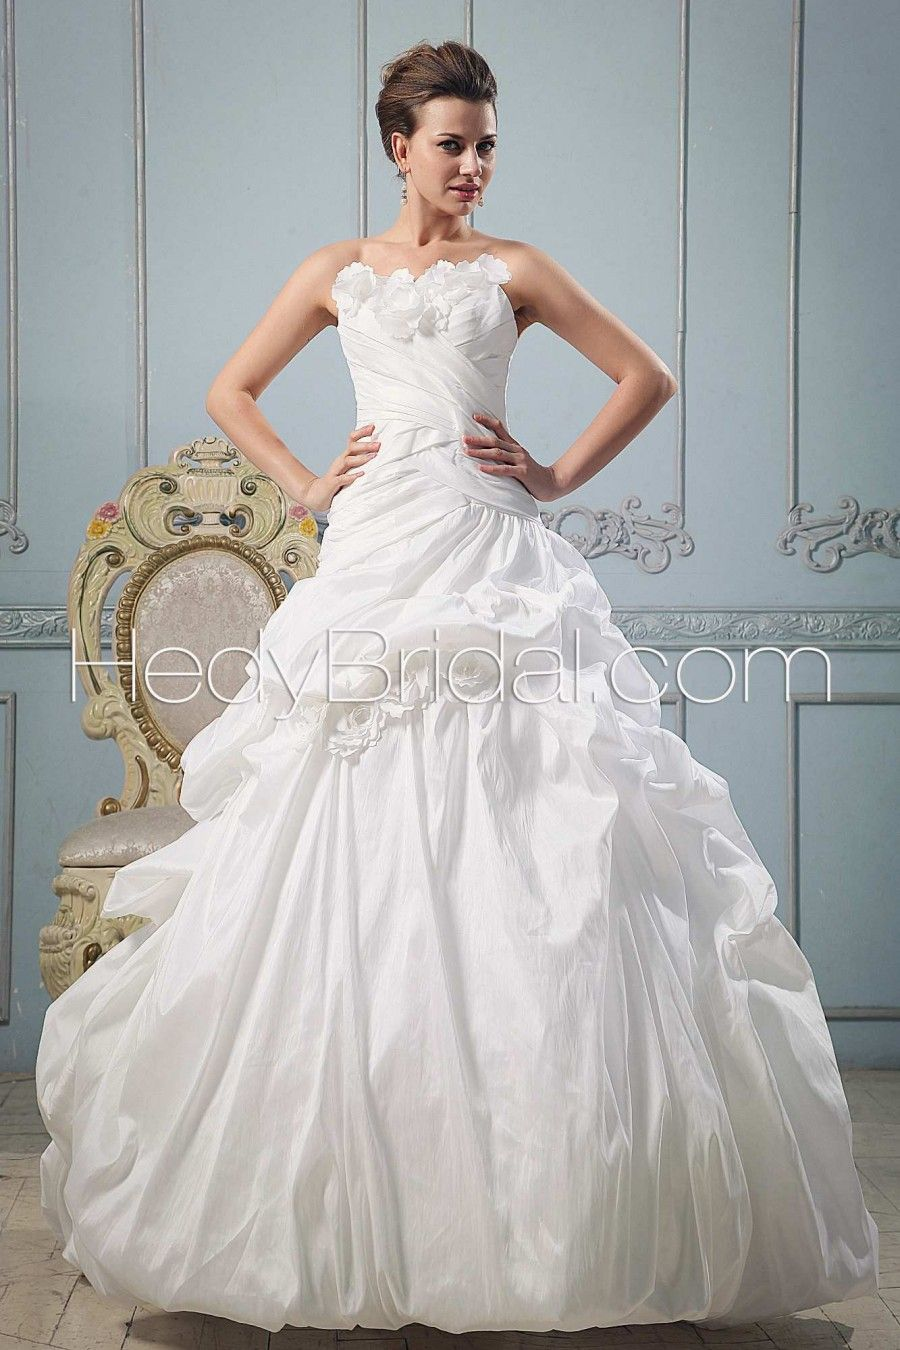 May Gown 343 00 Wedding Dresses Cheap Wedding Dress Wedding Dresses With Flowers